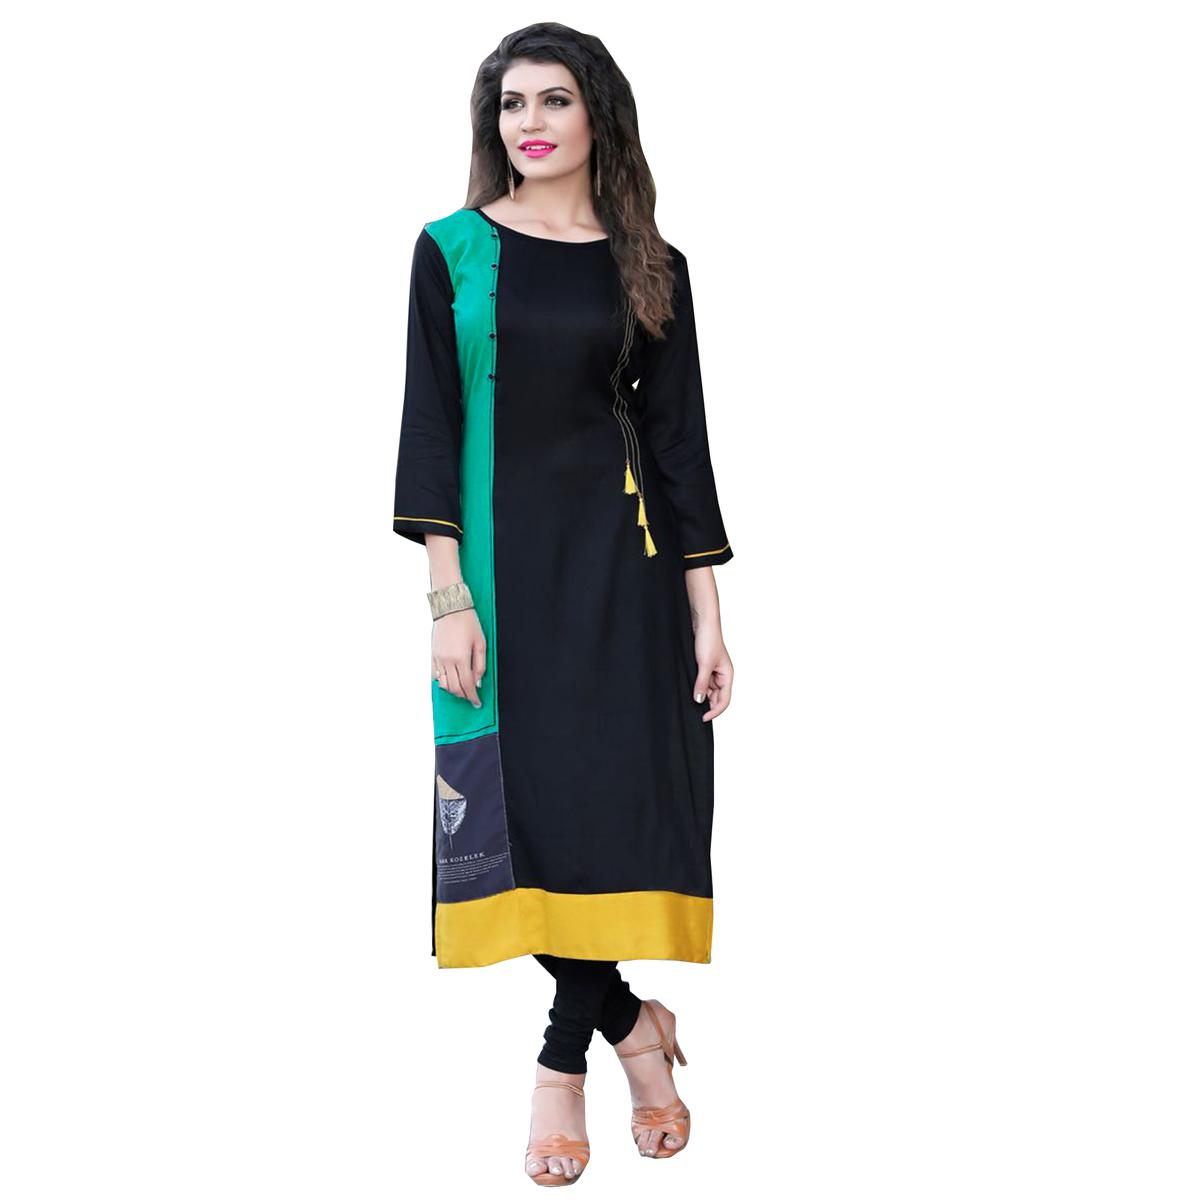 Magical Black Colored Casual Digital Printed Rayon Kurti